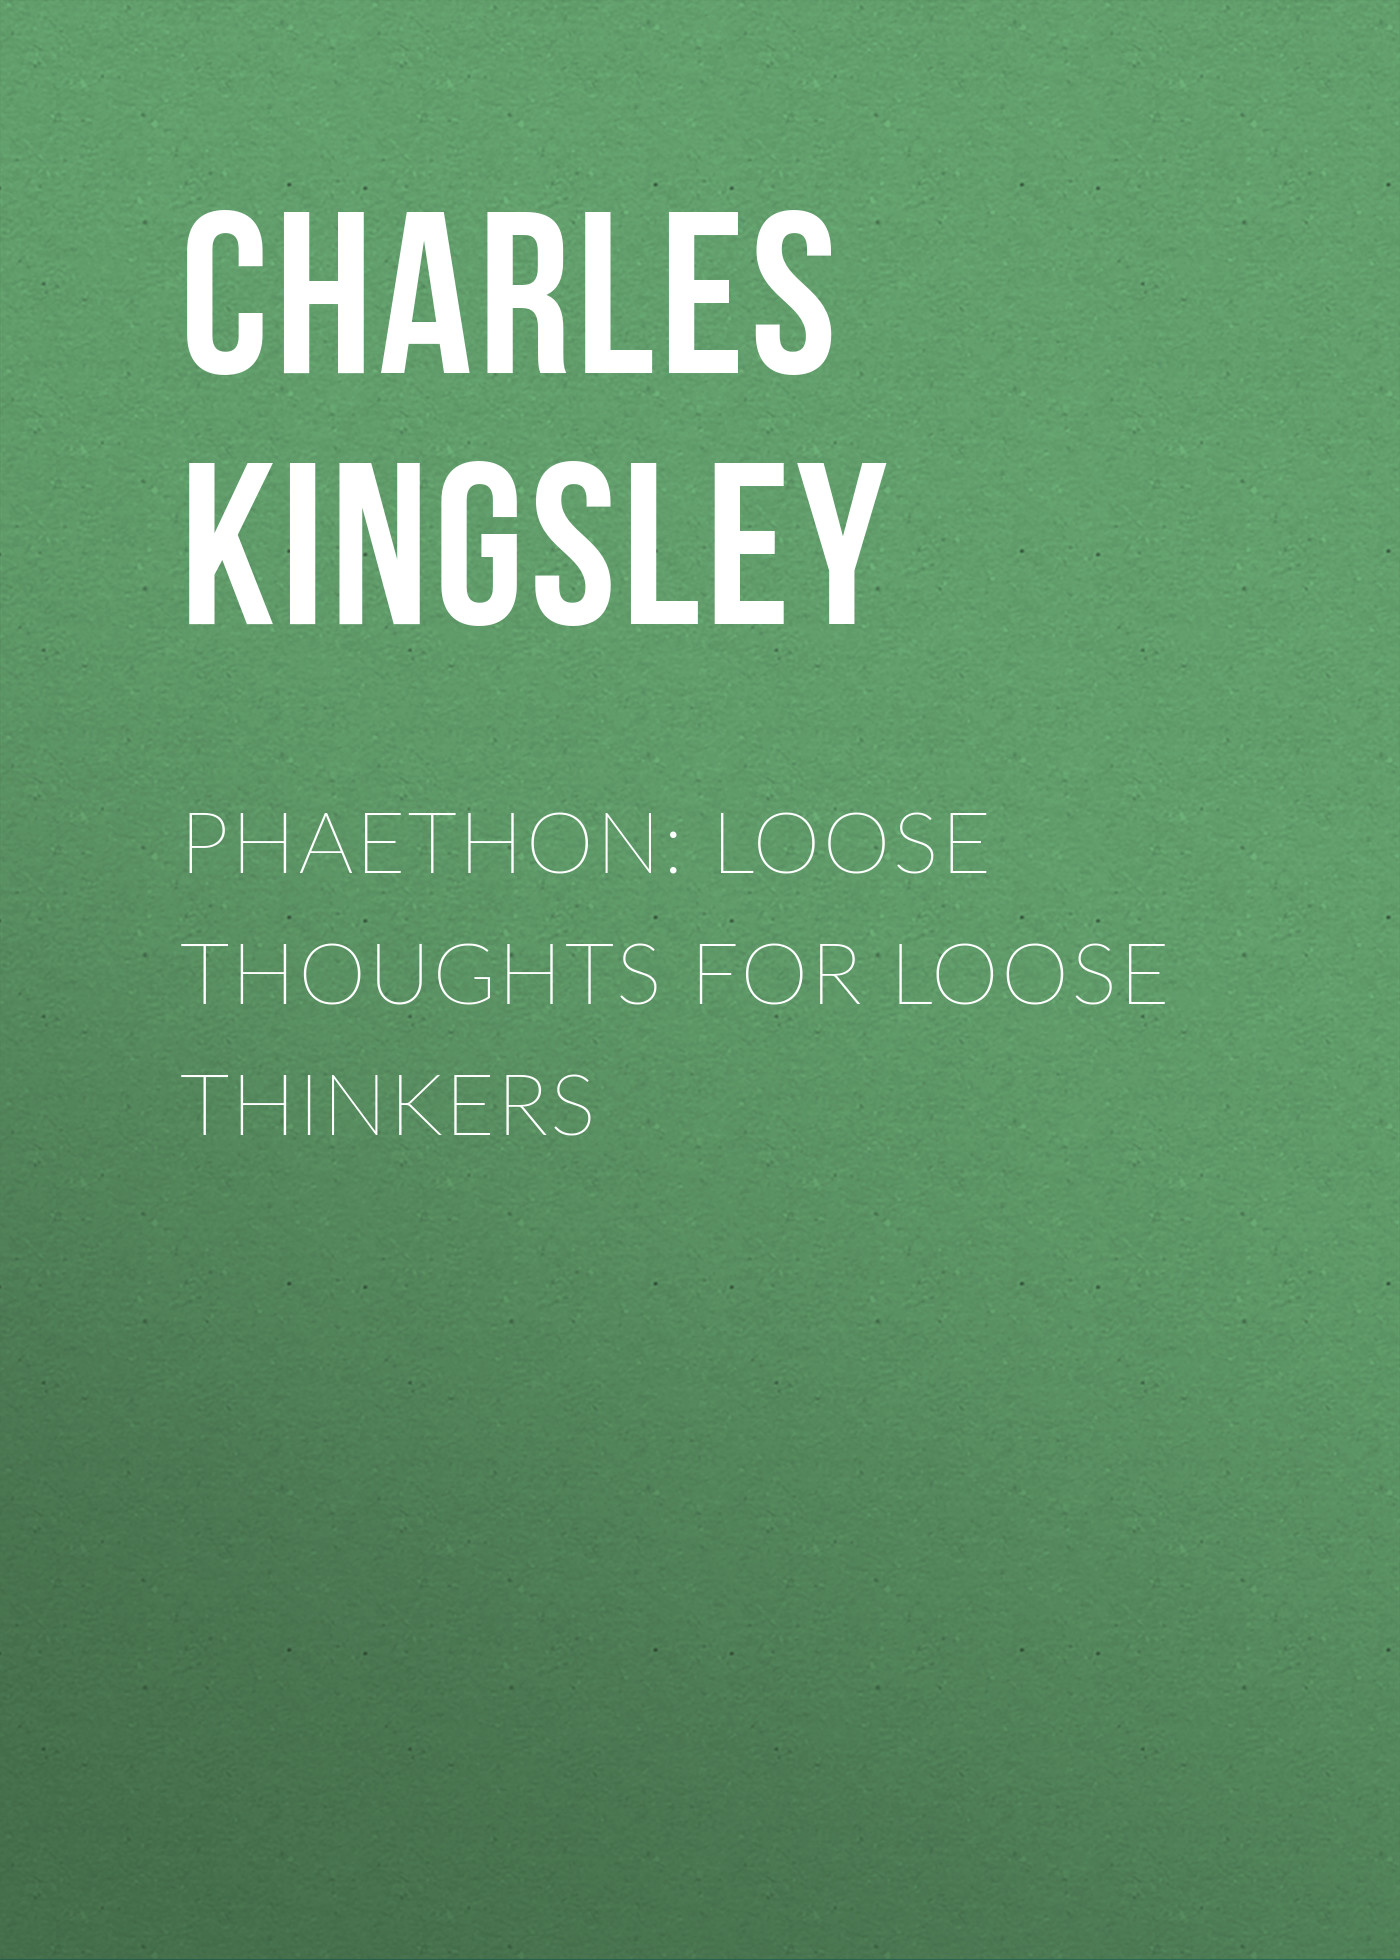 Phaethon: Loose Thoughts for Loose Thinkers